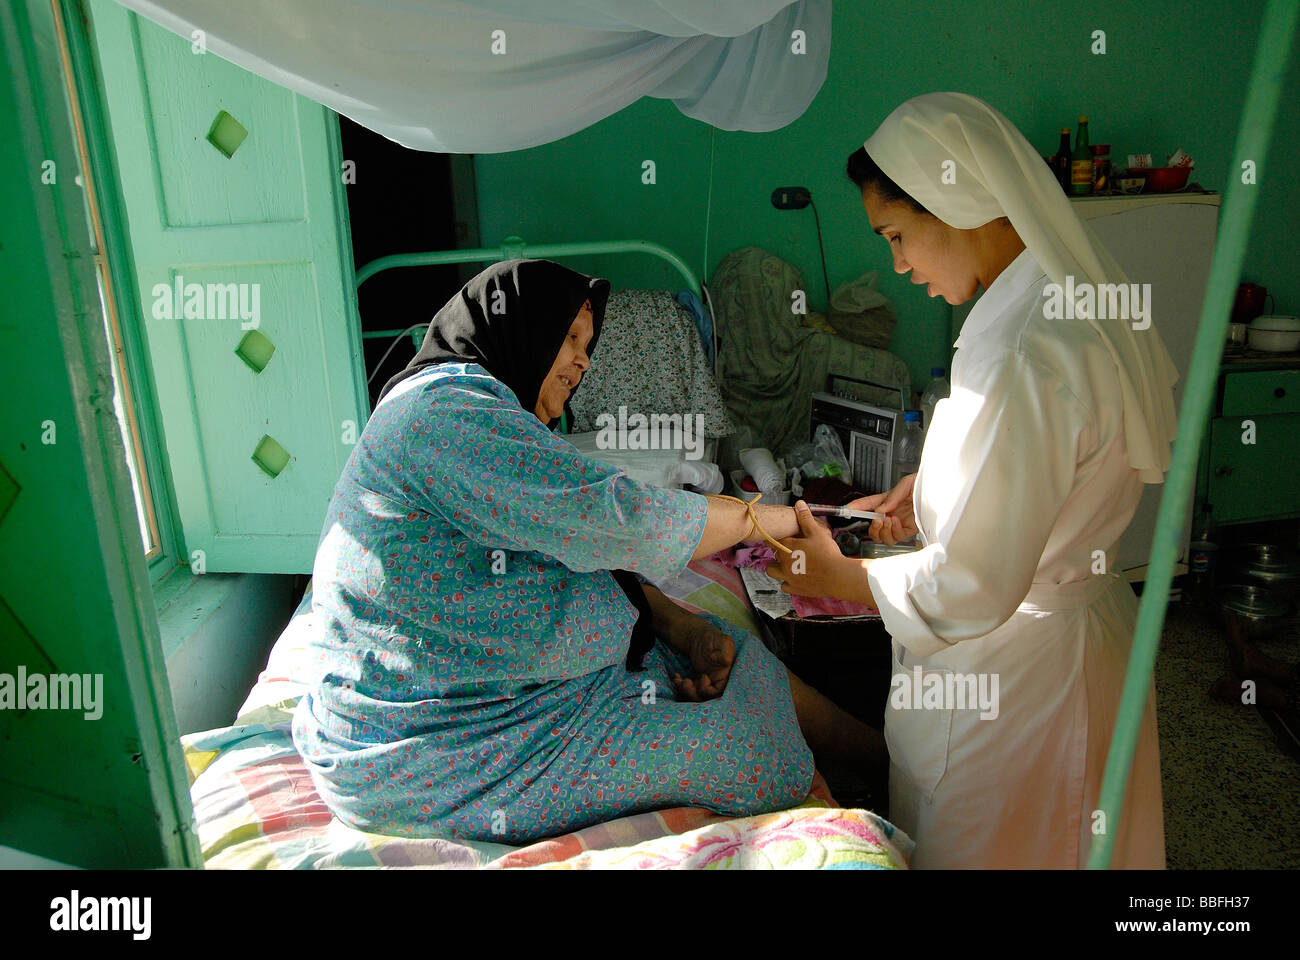 Sister Laura is taking a blood sample of one of the elderly leprosy patients in Egypt's leprosy colony. - Stock Image